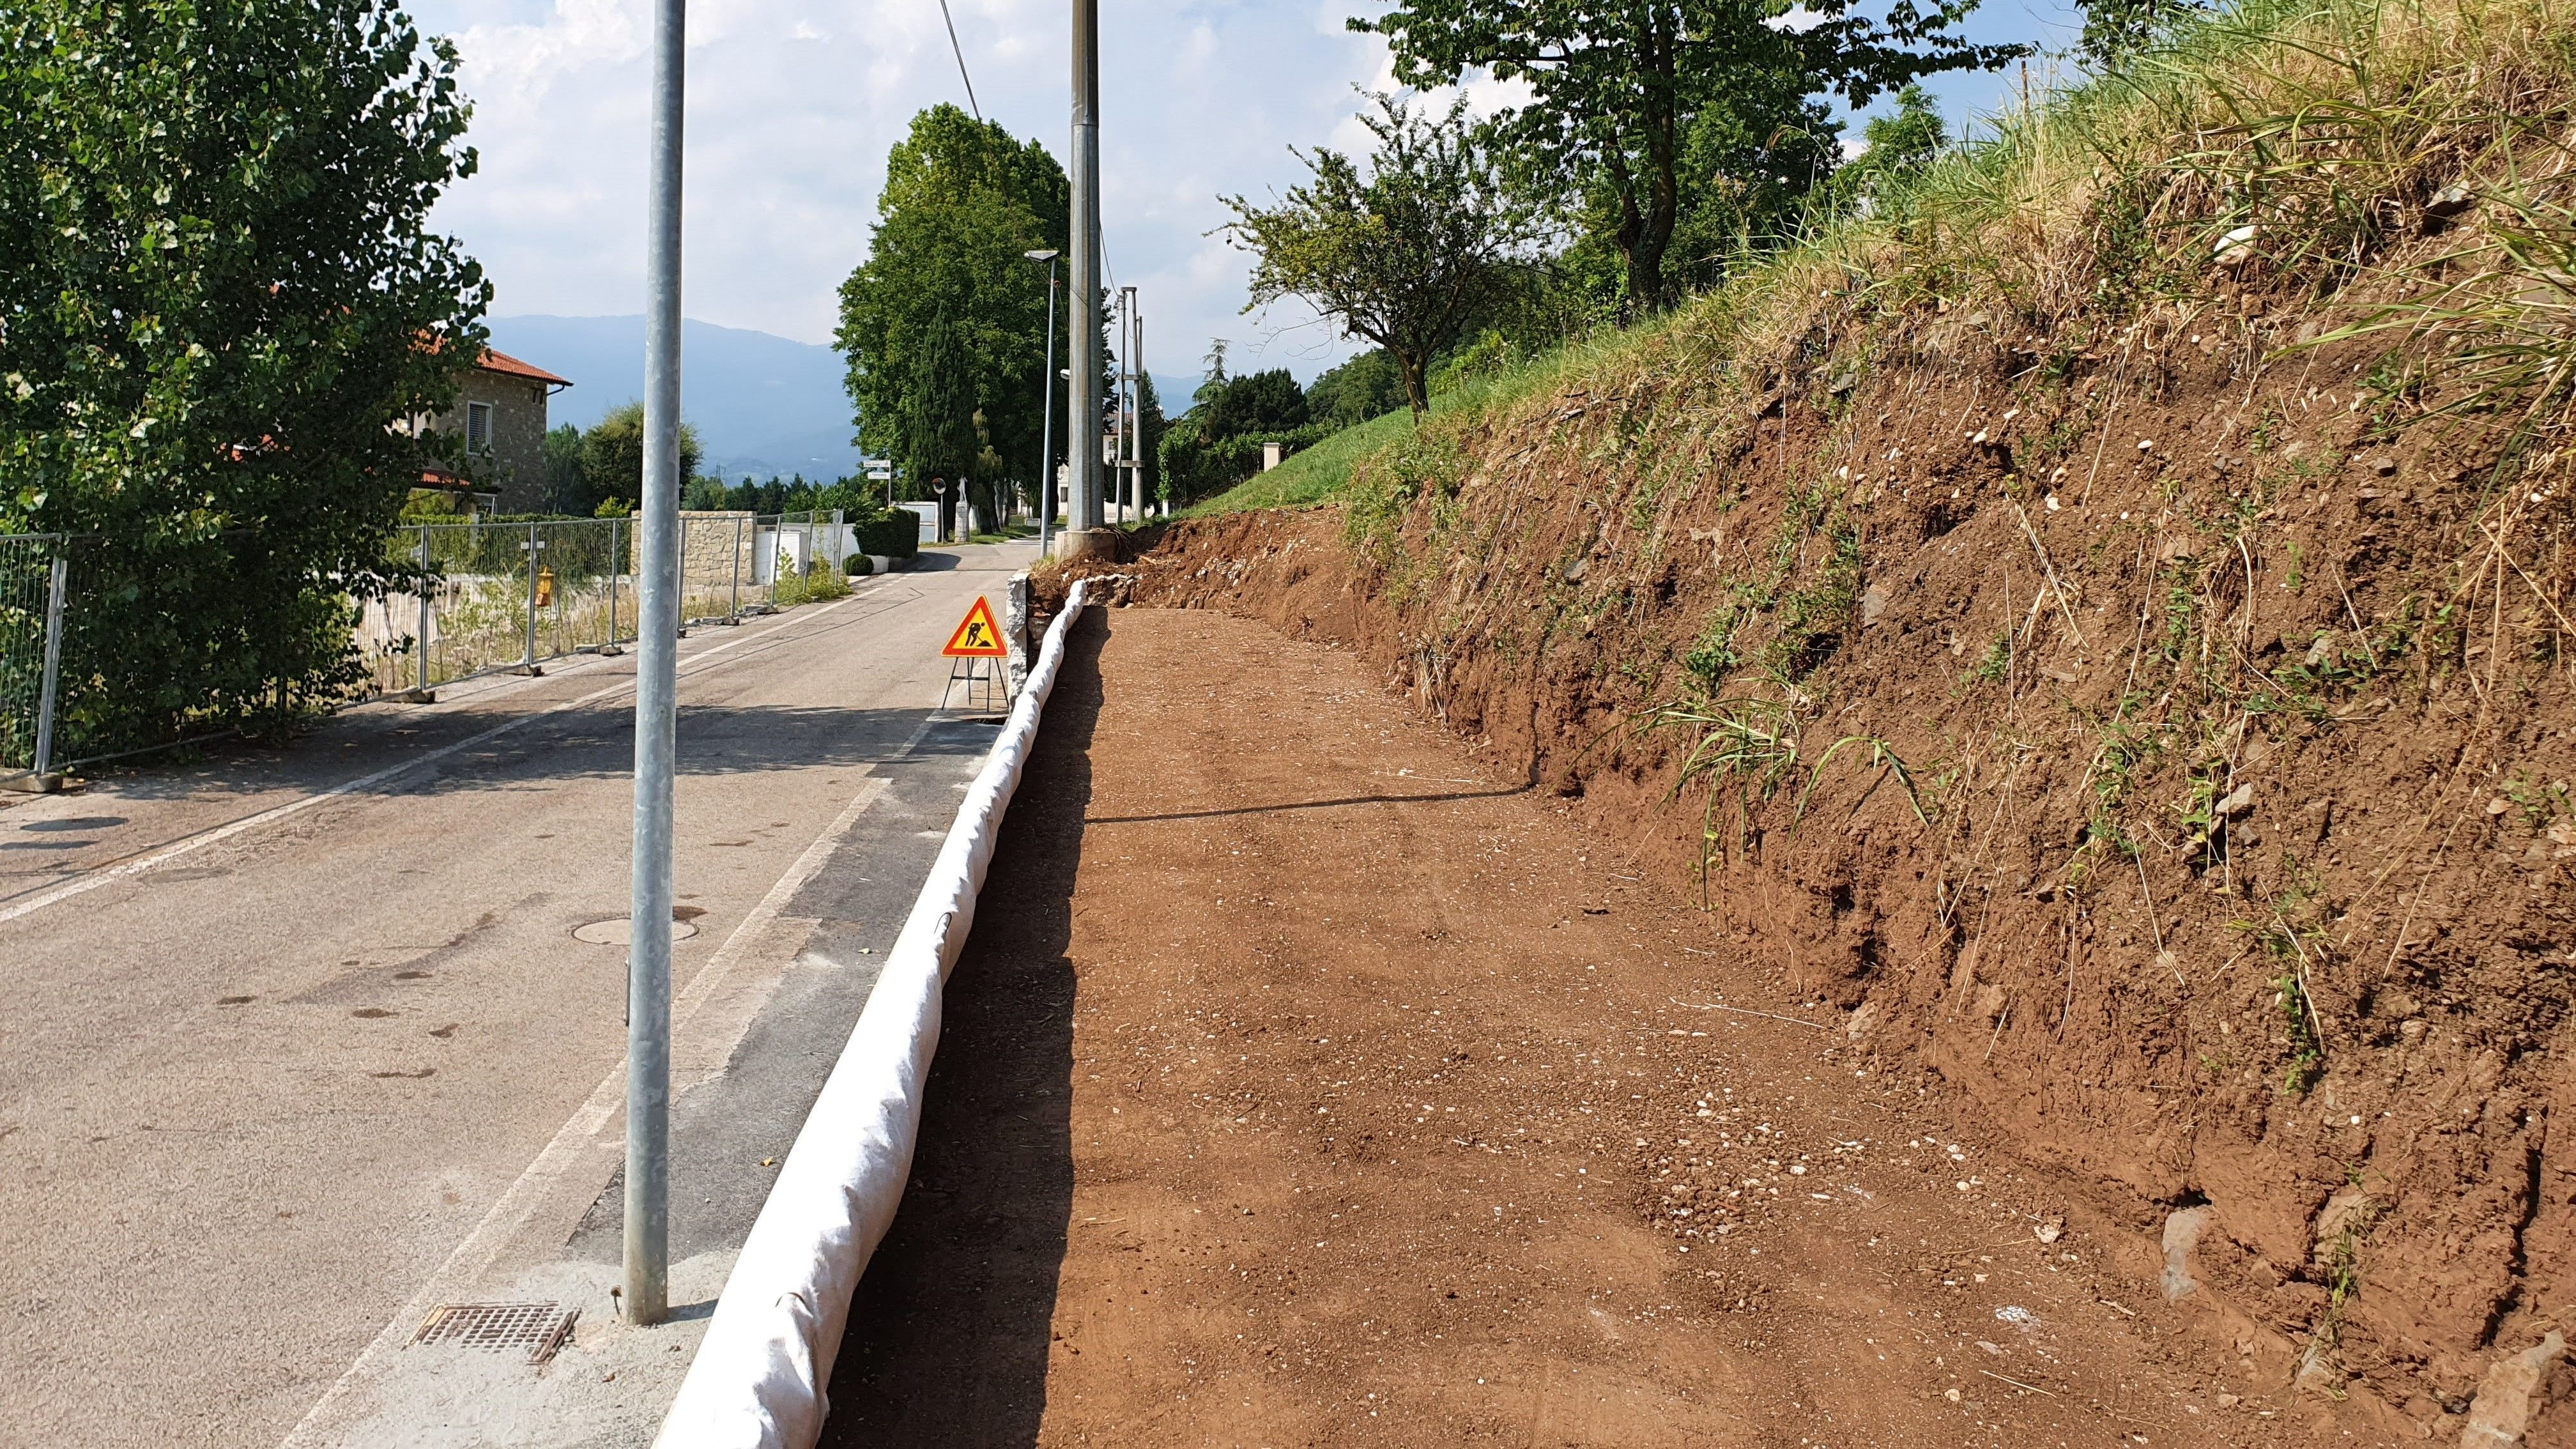 WORK: CONSTRUCTING A ROAD EMBANKMENT